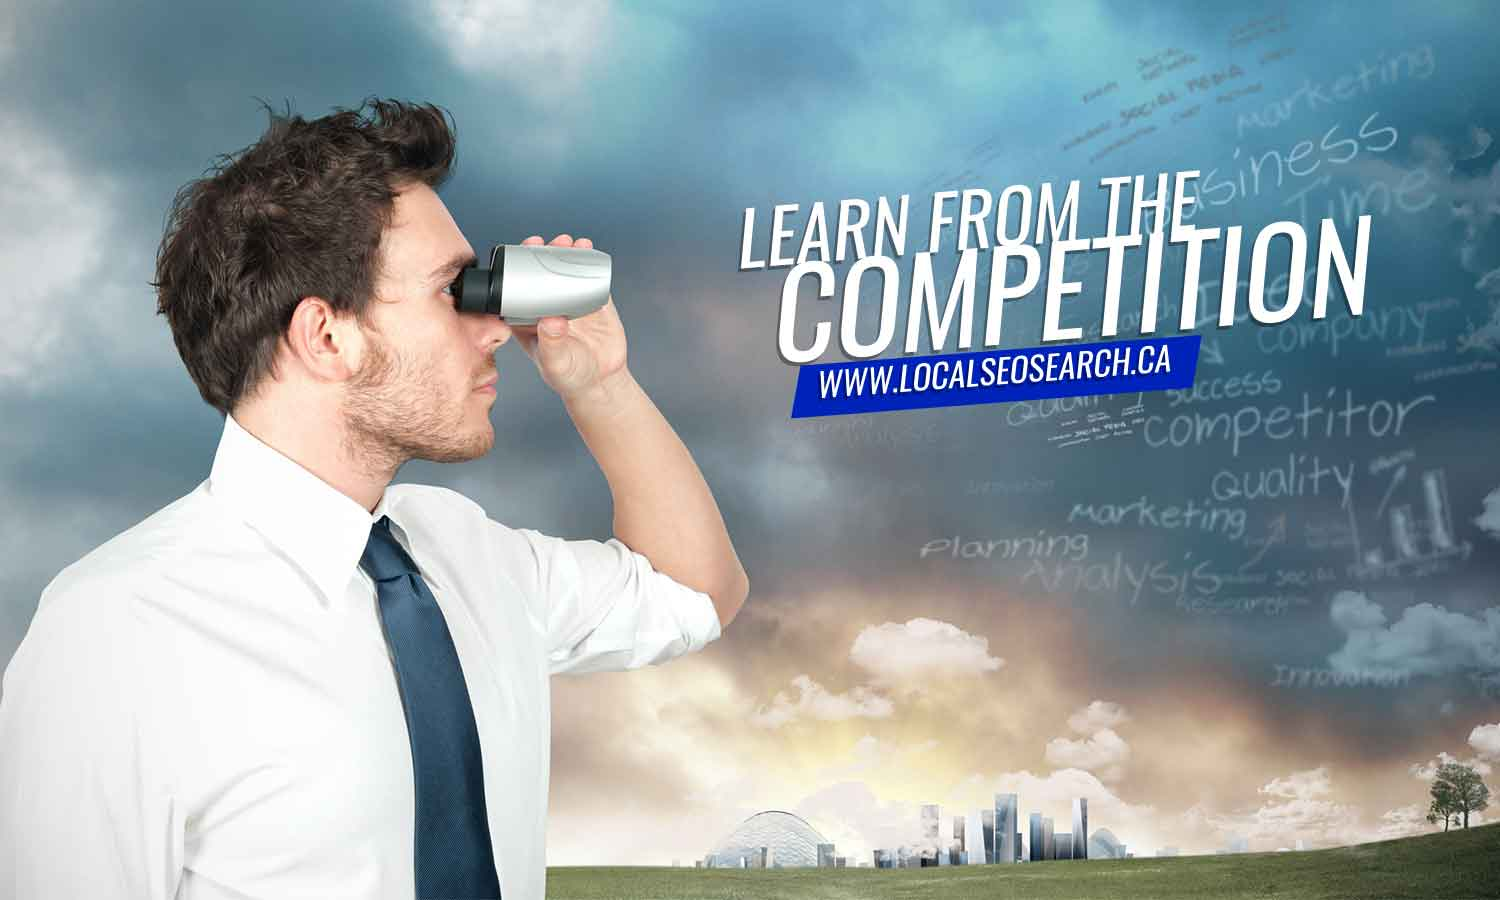 Learn from the competition